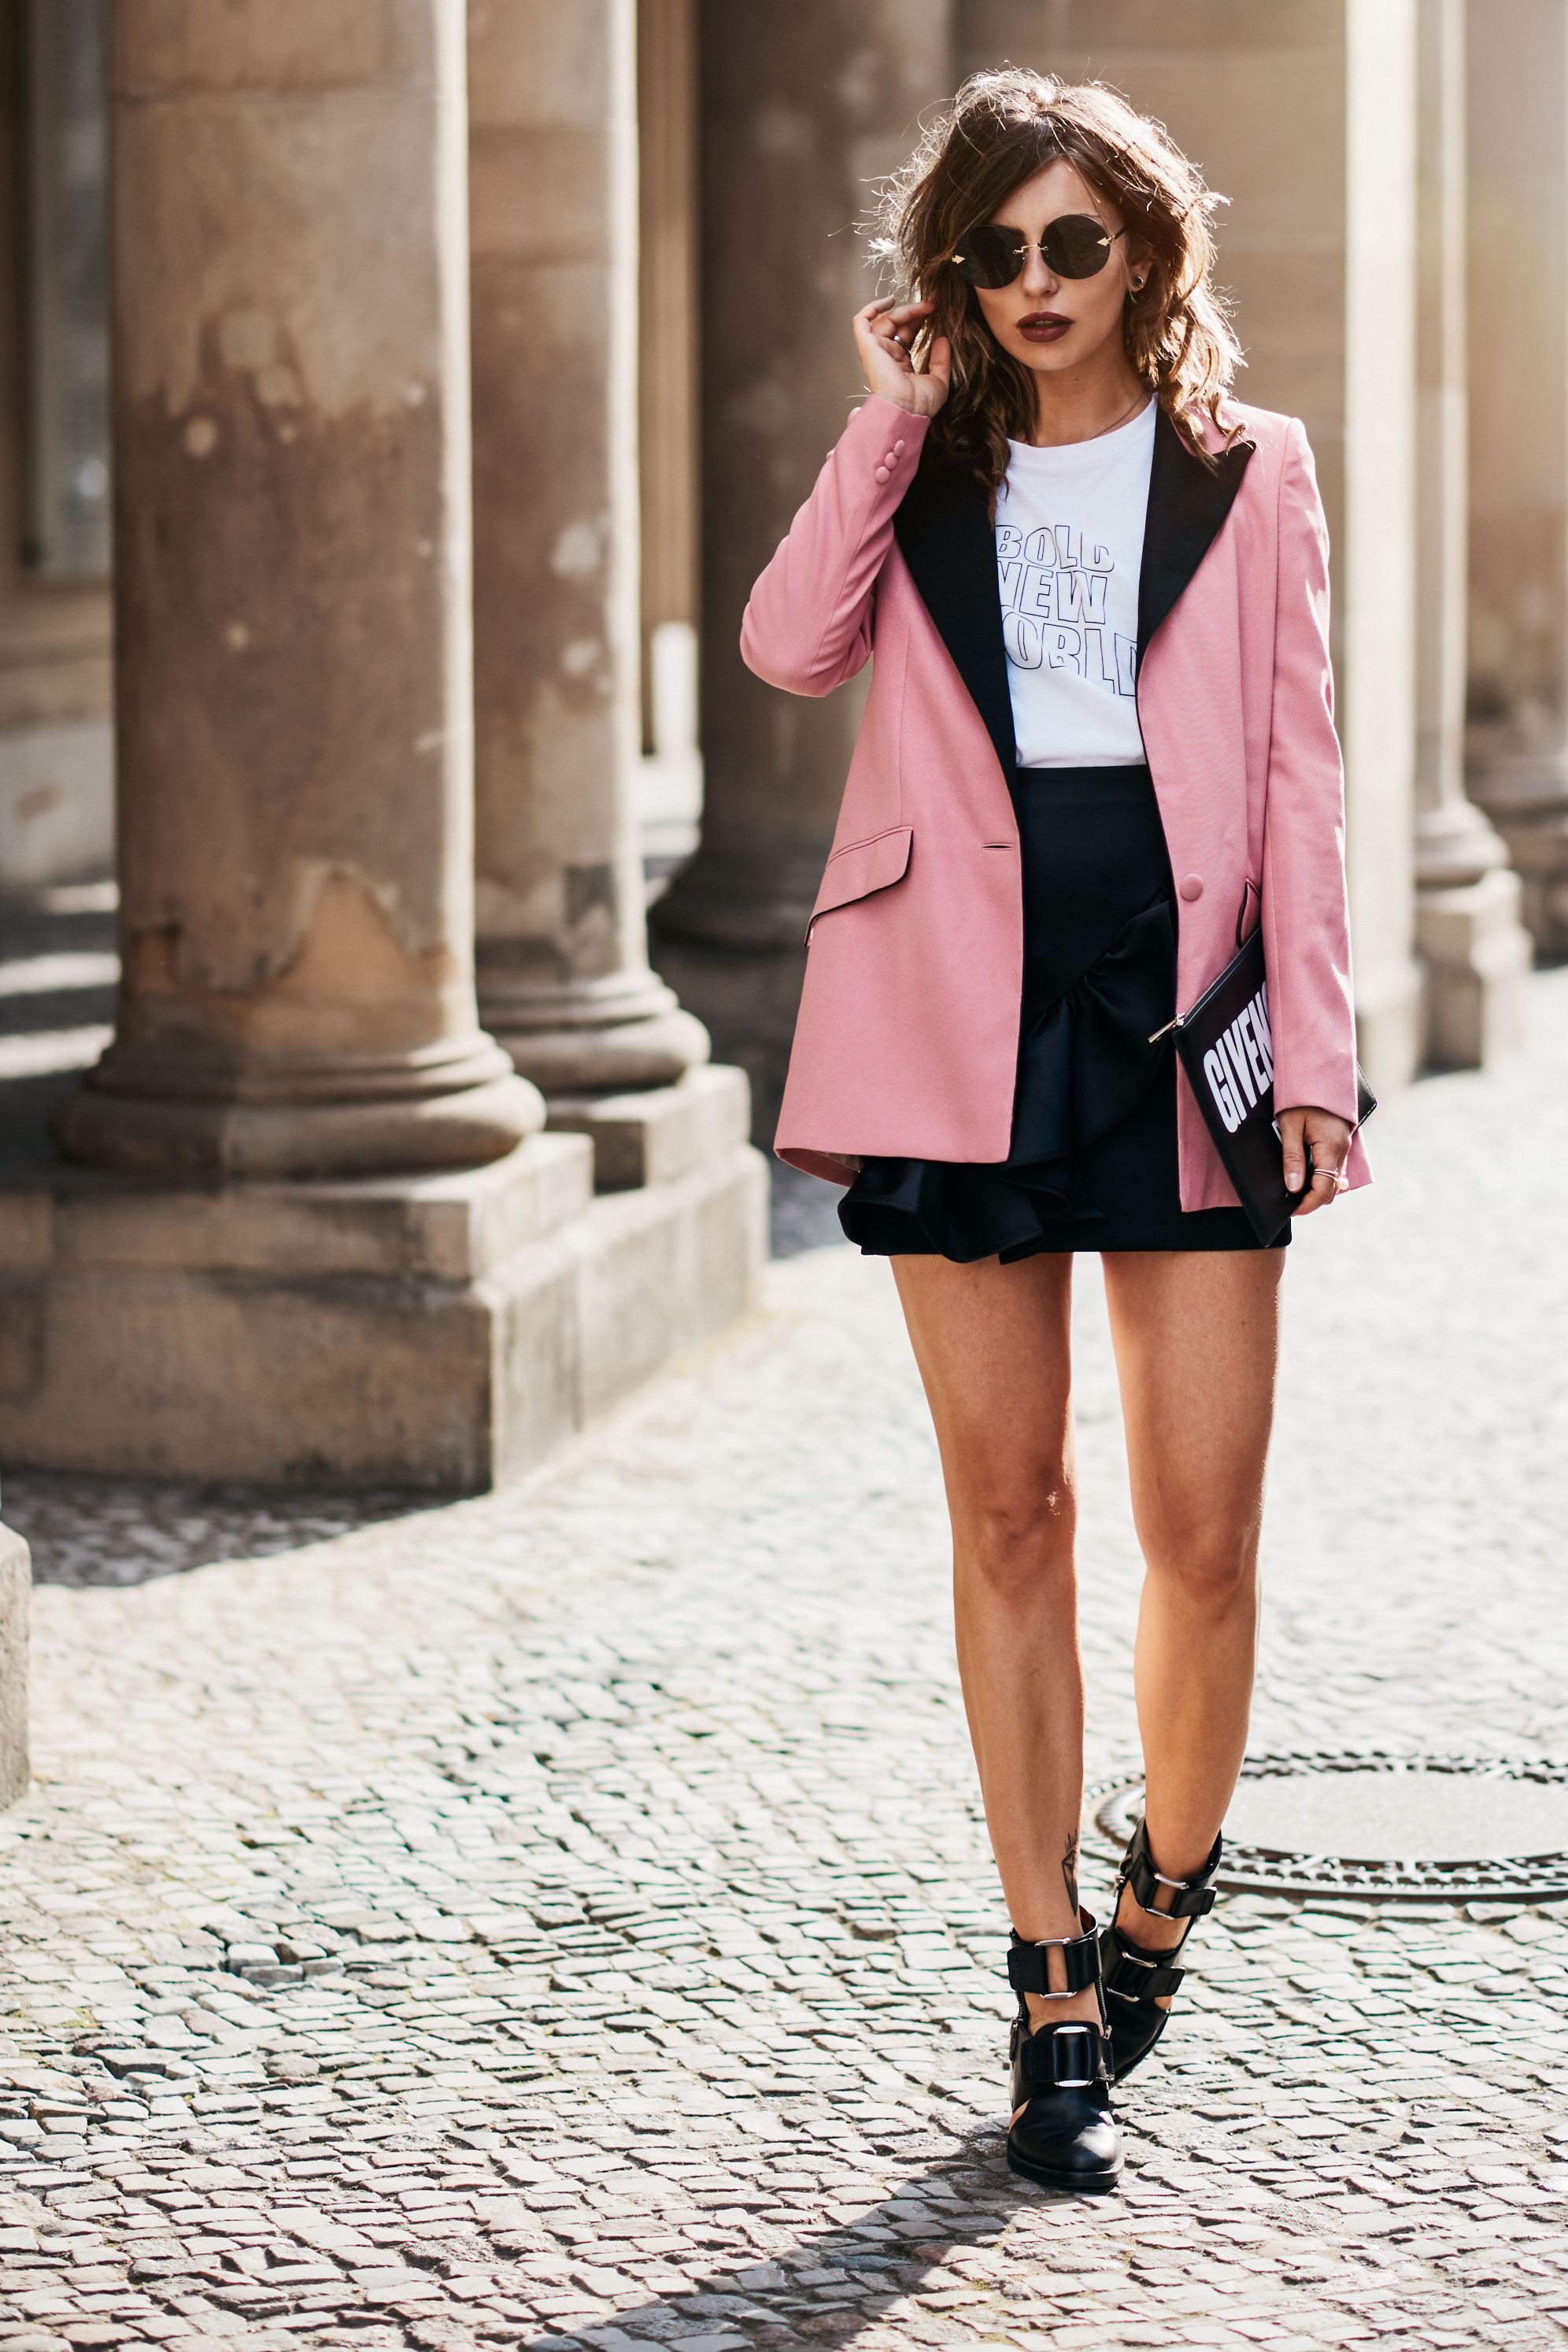 Outfit in Berlin | style: sexy, party, bold, pink, feminine, edgy, cool | pink Blazer from Hebe Studio, clutch from Givenchy, halboffene Boots von 3.1 Phillip Lim, Rüschenrock von H&M